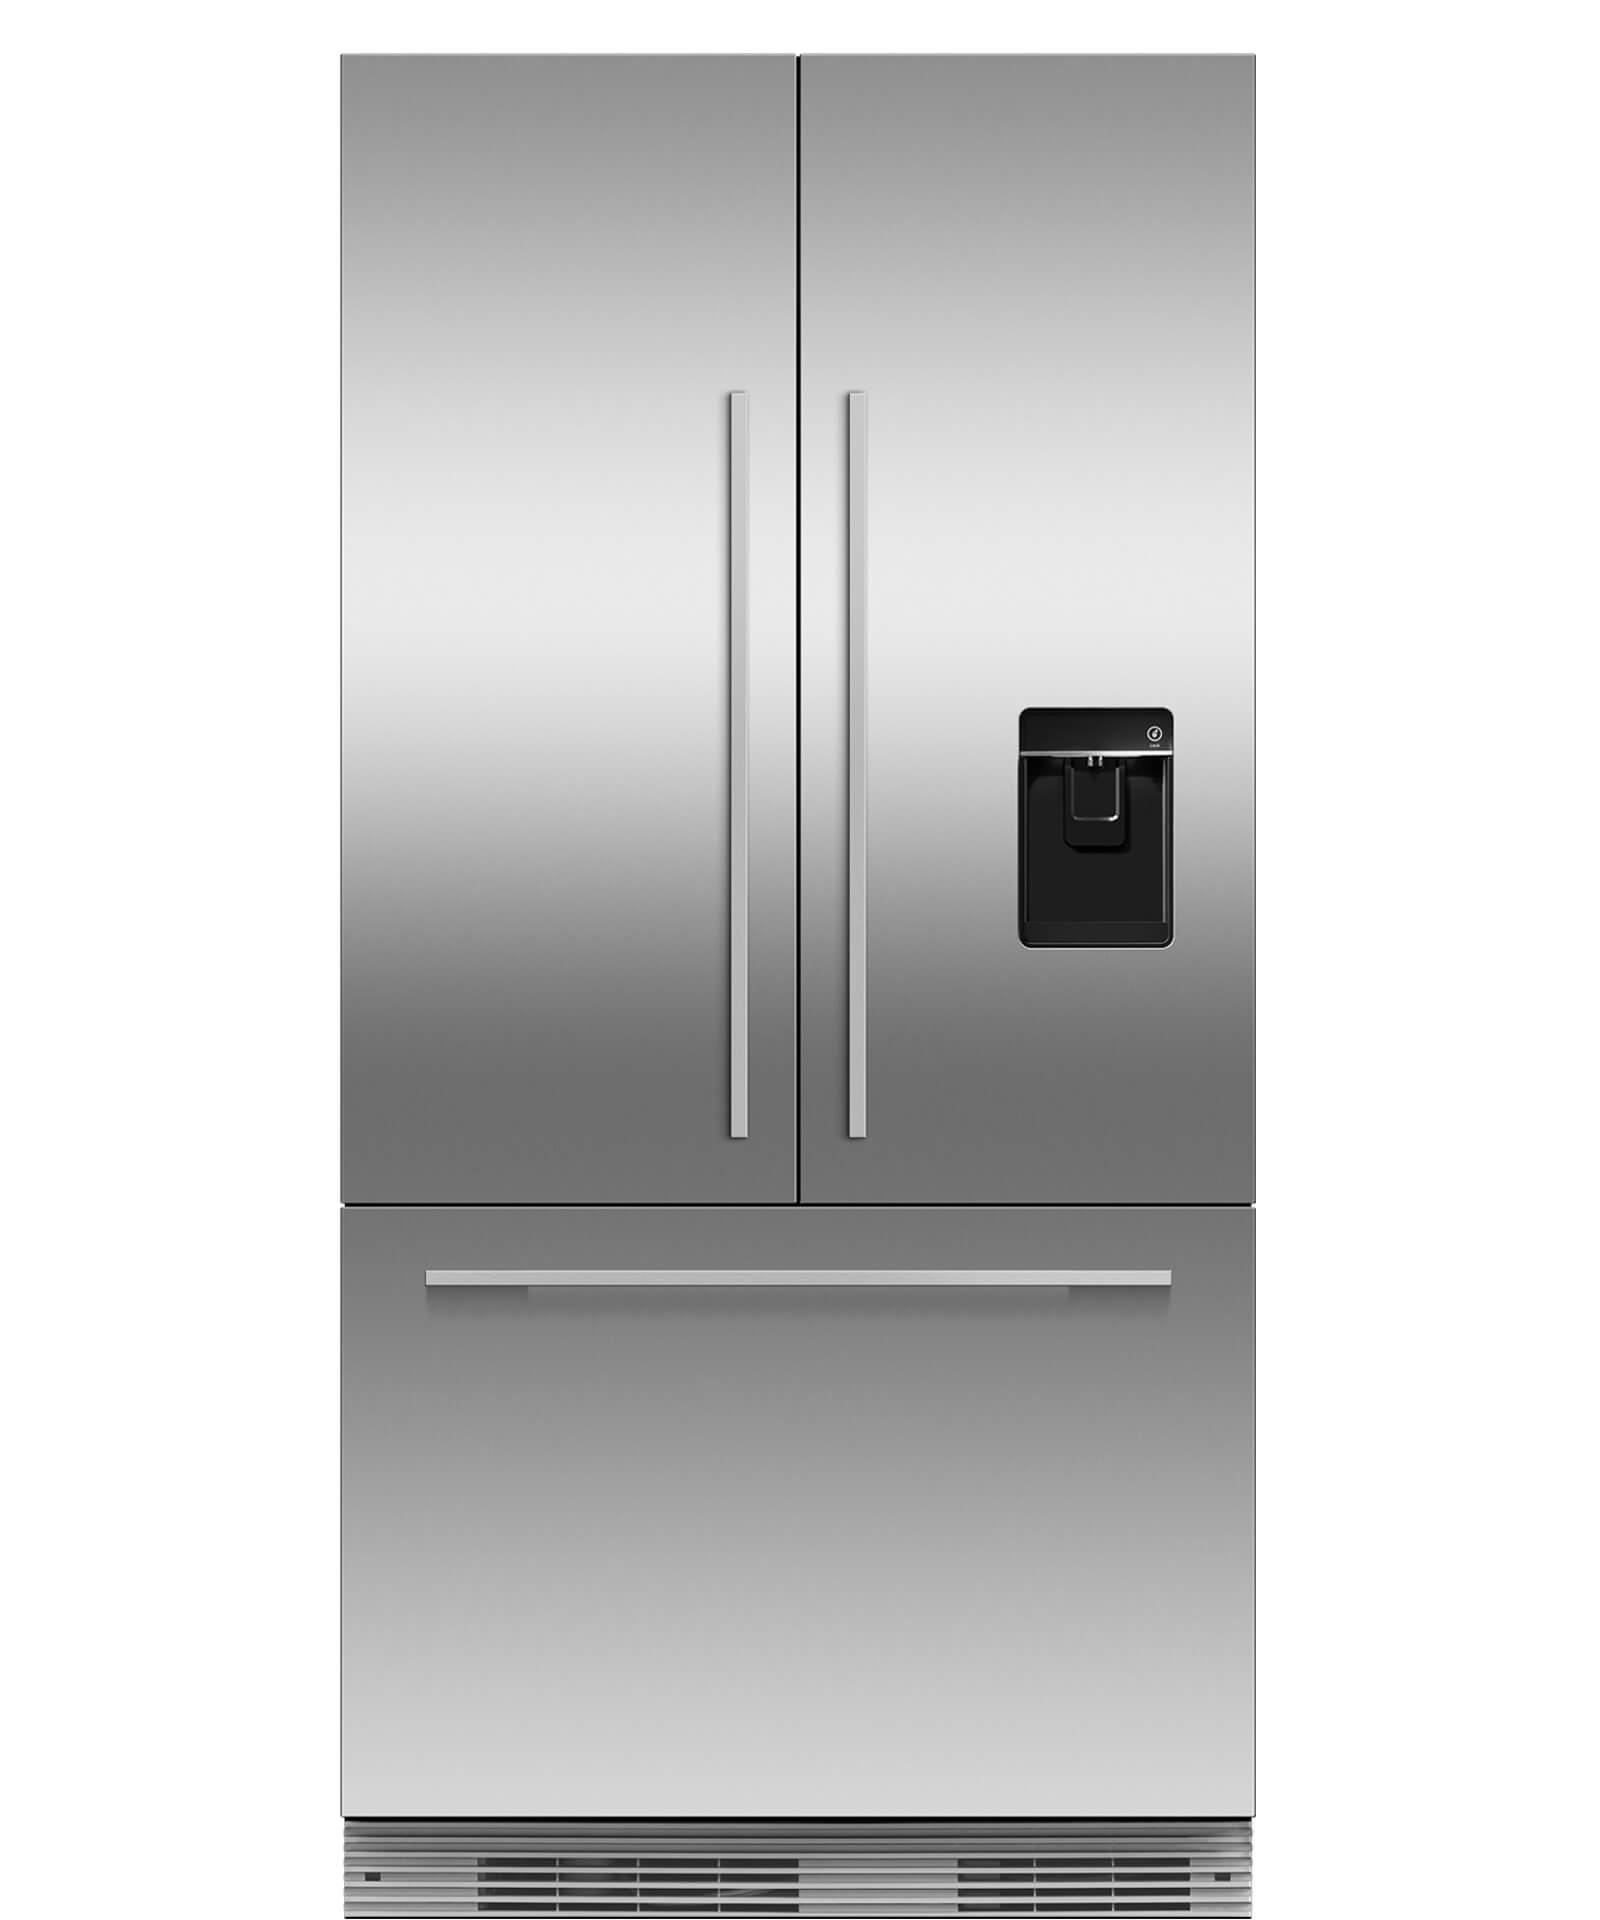 RS90AU1 - ActiveSmart™  Fridge 900mm French Door Slide-in with Ice & Water – Stainless Steel - 25348